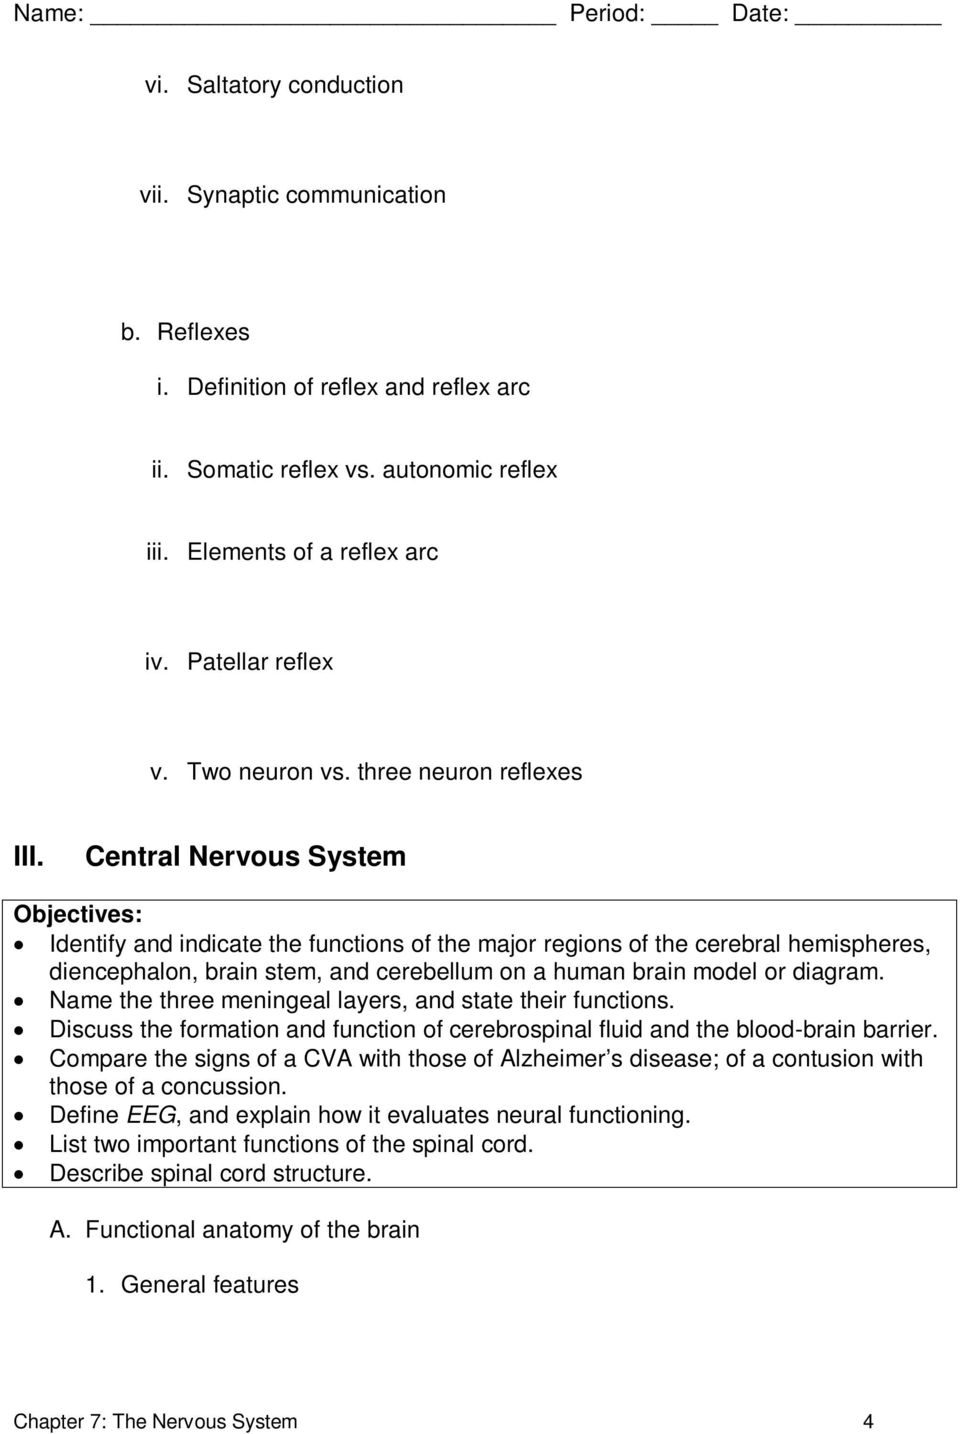 Central Nervous System Objectives: Identify and indicate the functions of the major regions of the cerebral hemispheres, diencephalon, brain stem, and cerebellum on a human brain model or diagram.